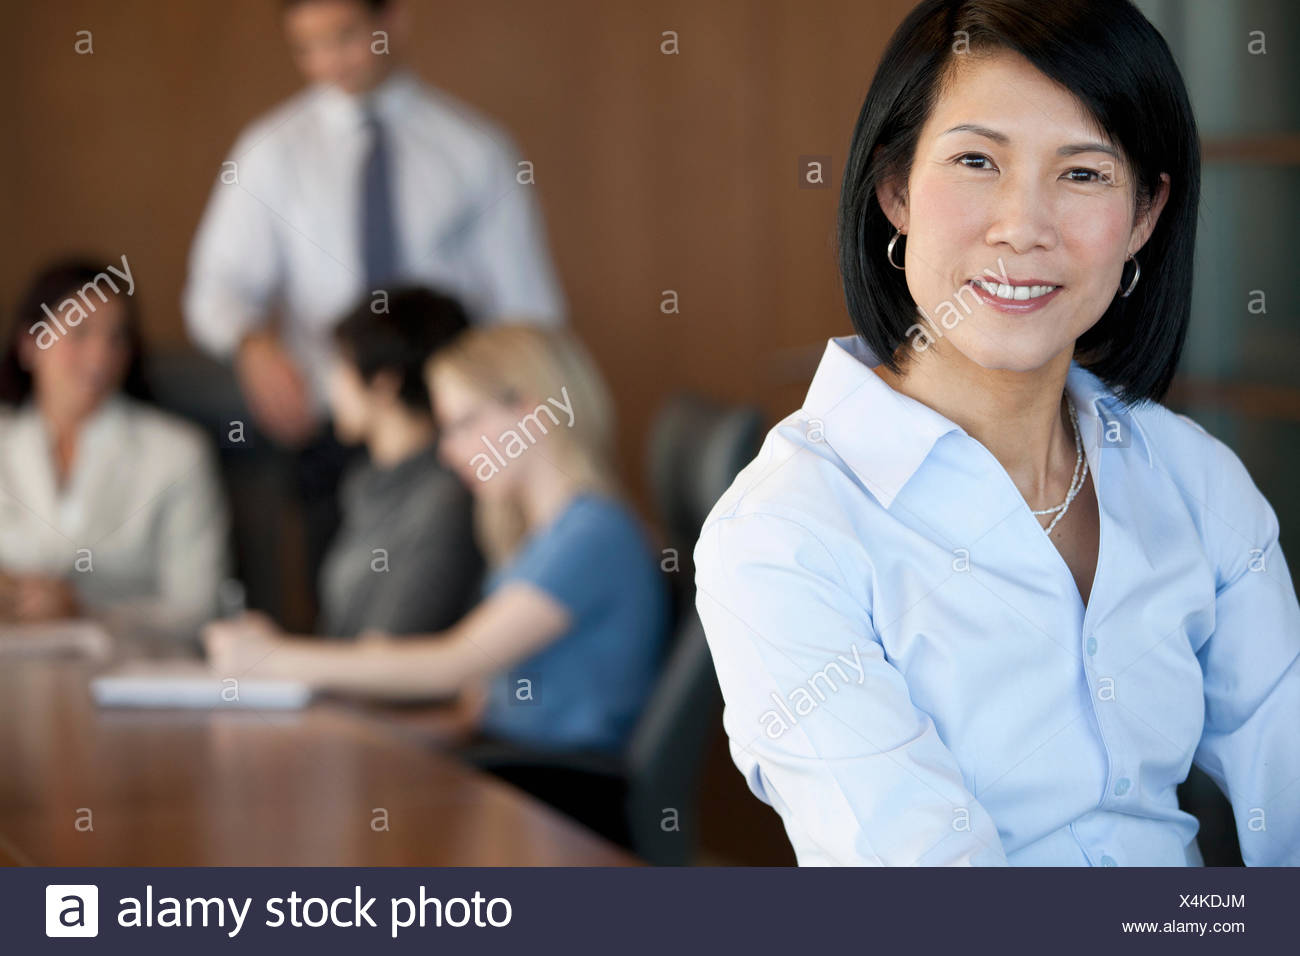 discussion with small group of coworkers - Stock Image